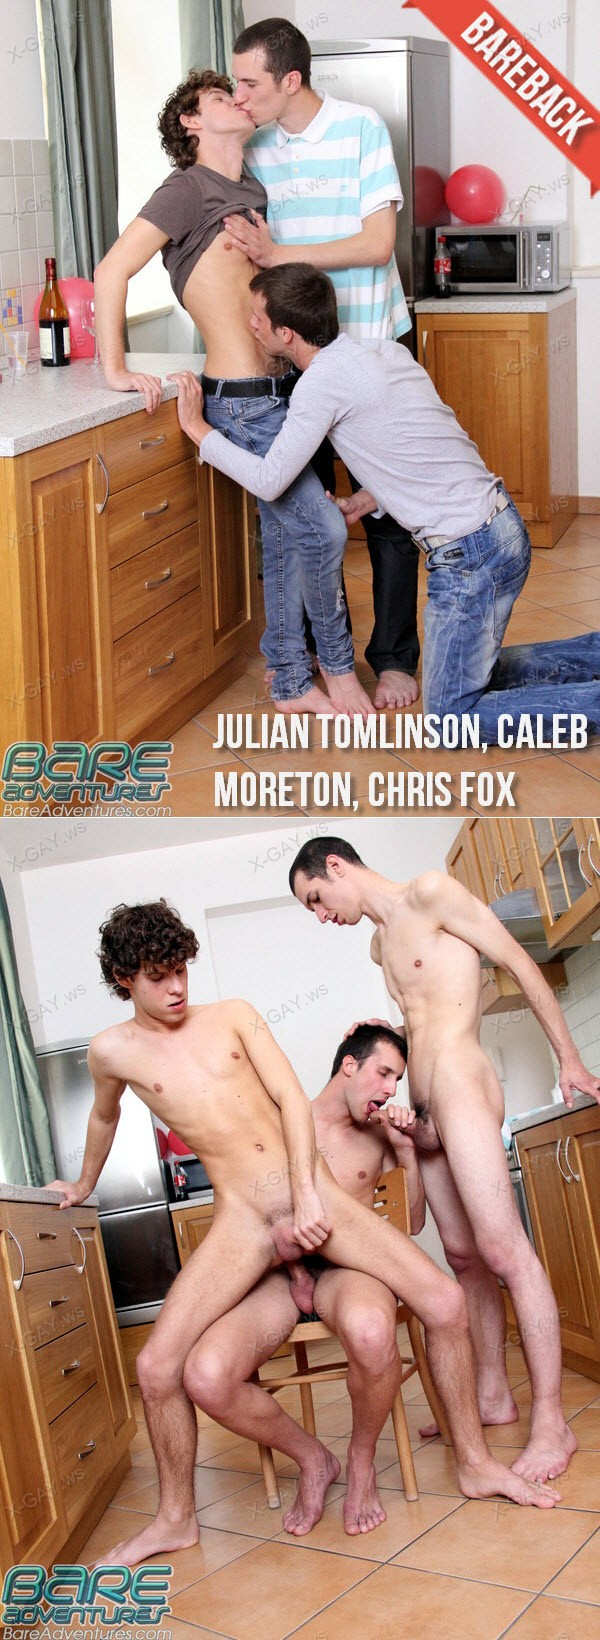 BareAdventures: Julian Tomlinson, Caleb Moreton, Chris Fox